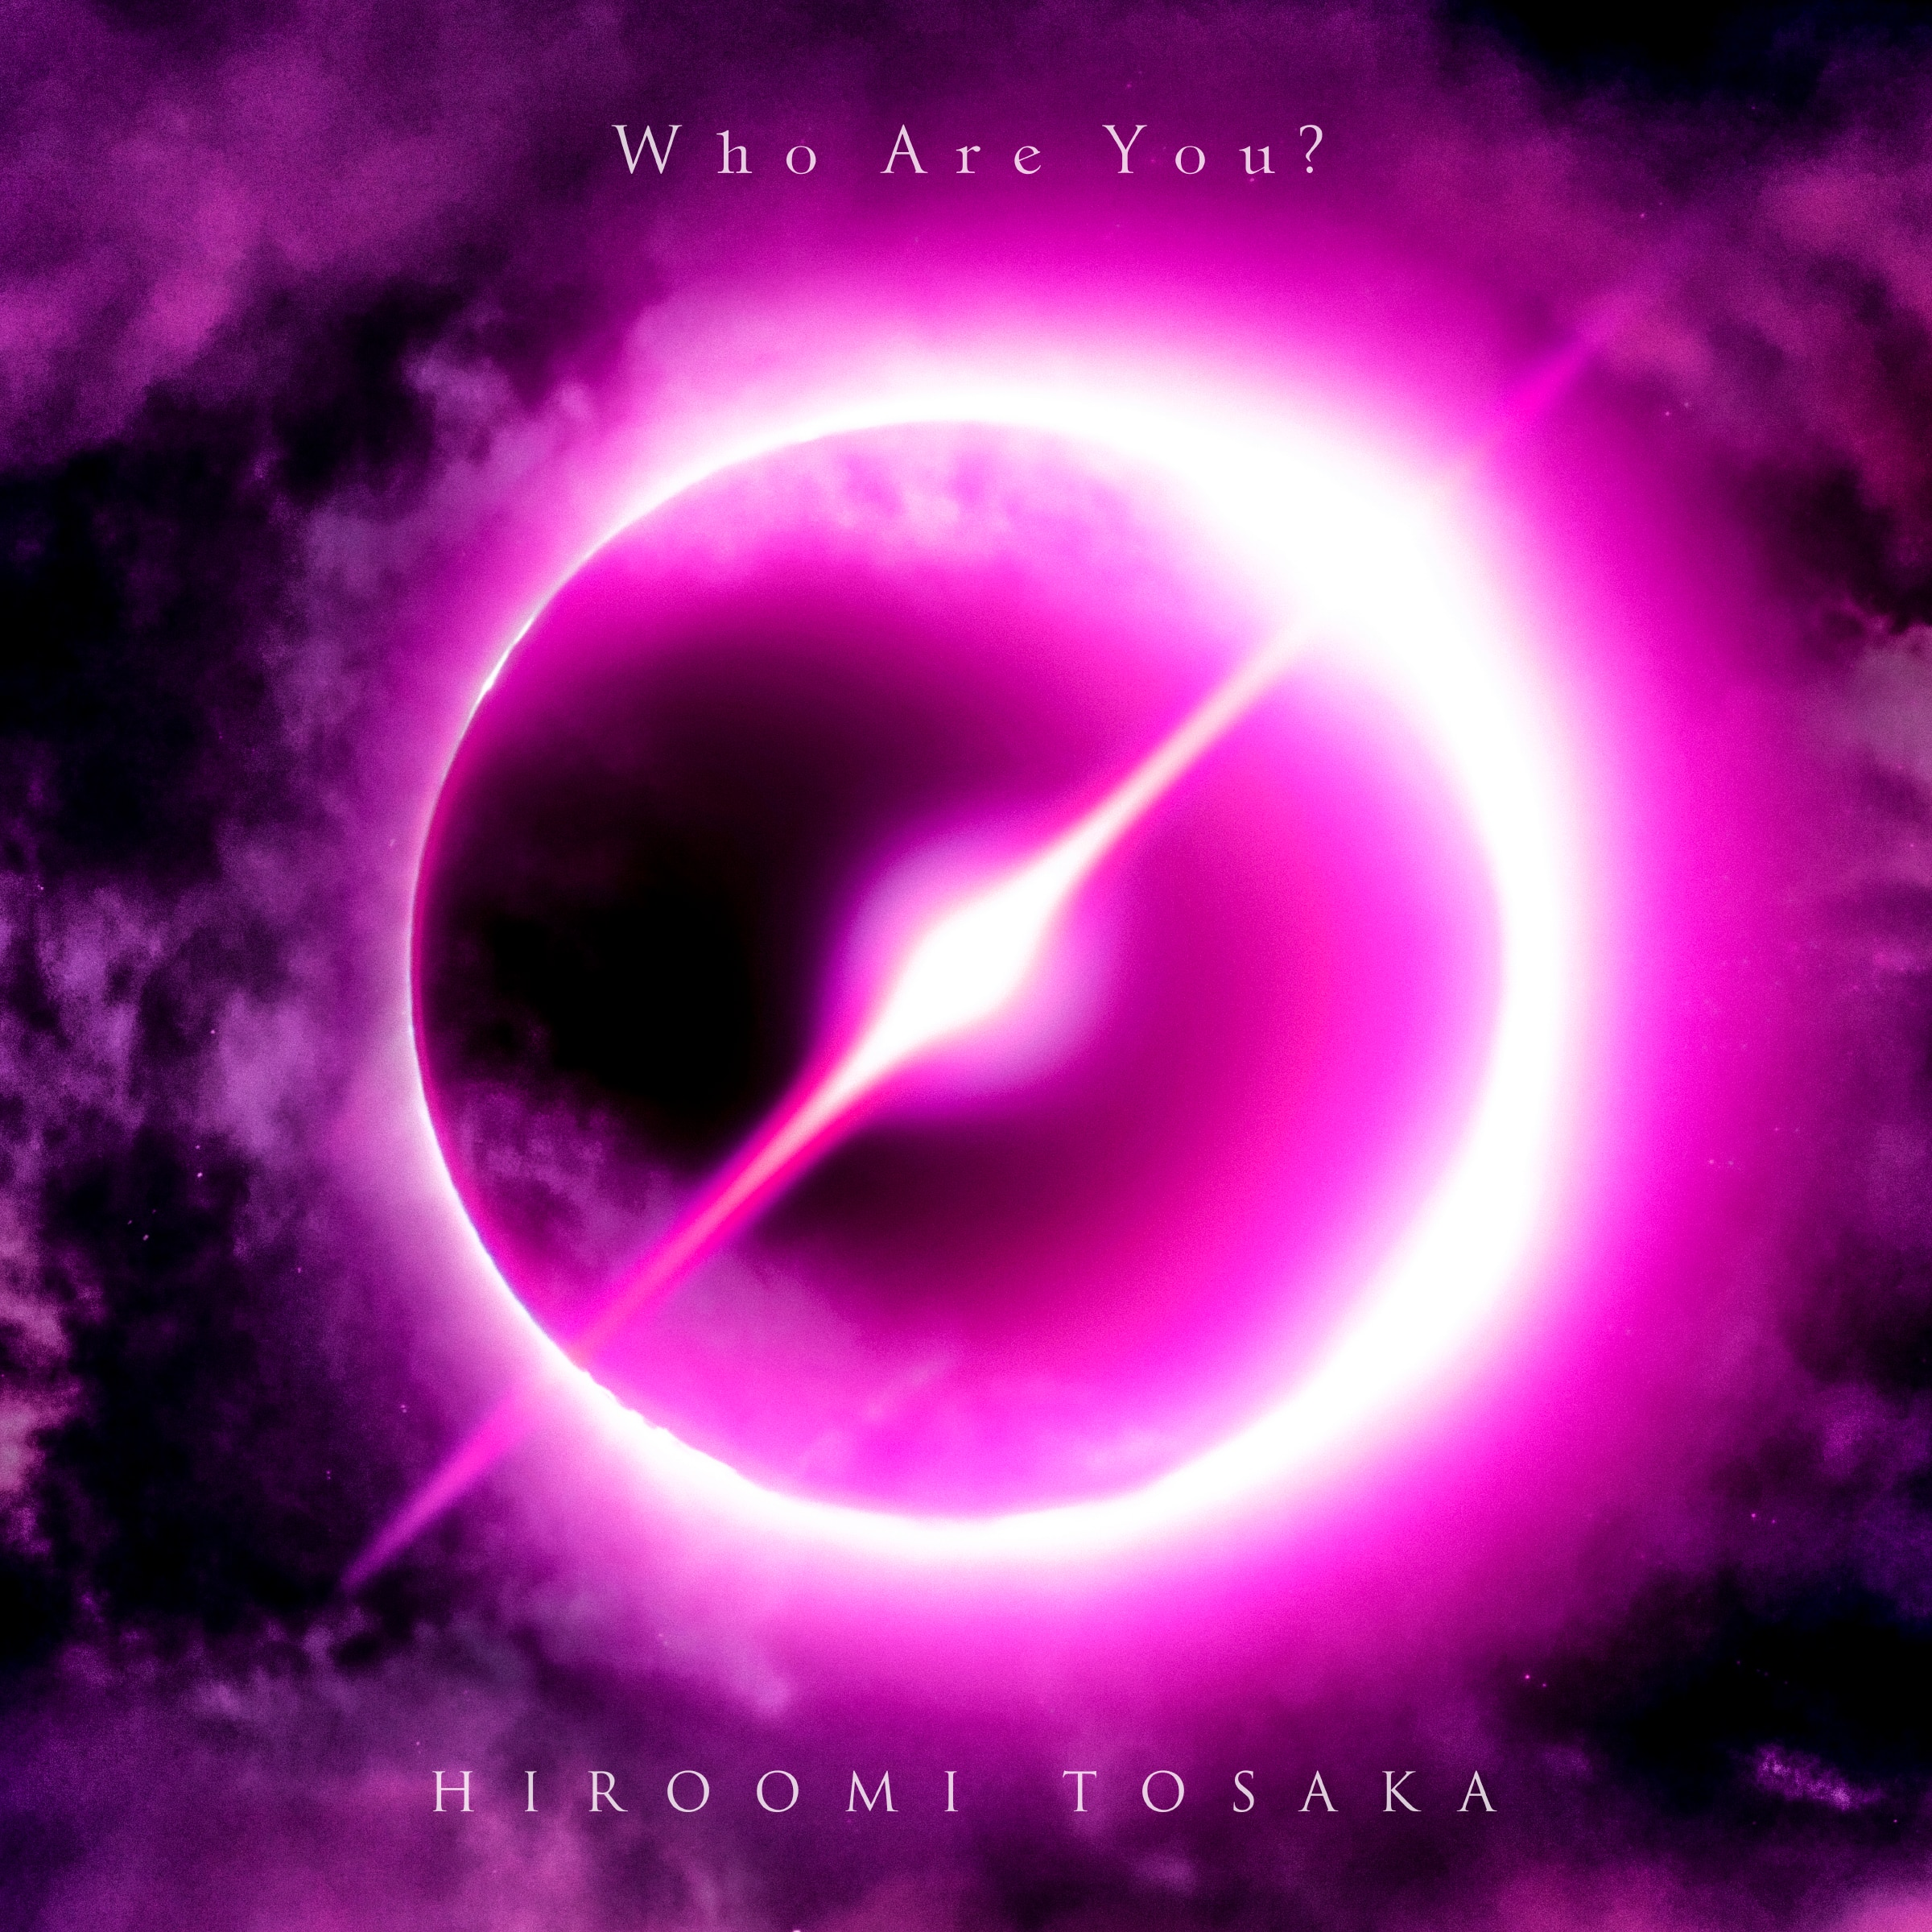 Who Are You? (初回生産限定盤 / CD+DVD+スマプラ対応)